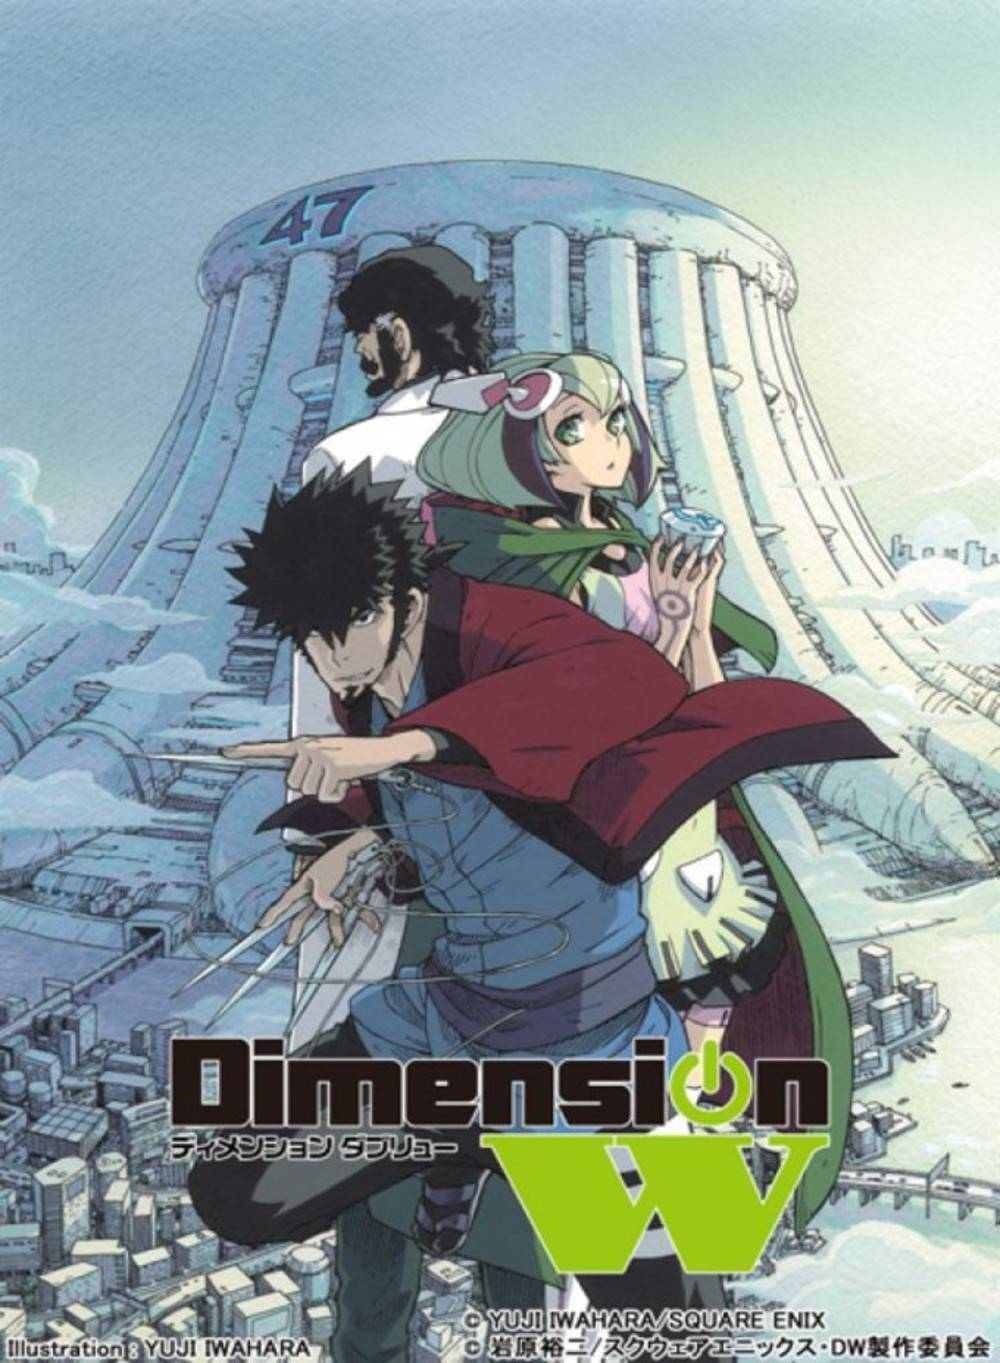 Dimension W - Recenzja anime zima 2016